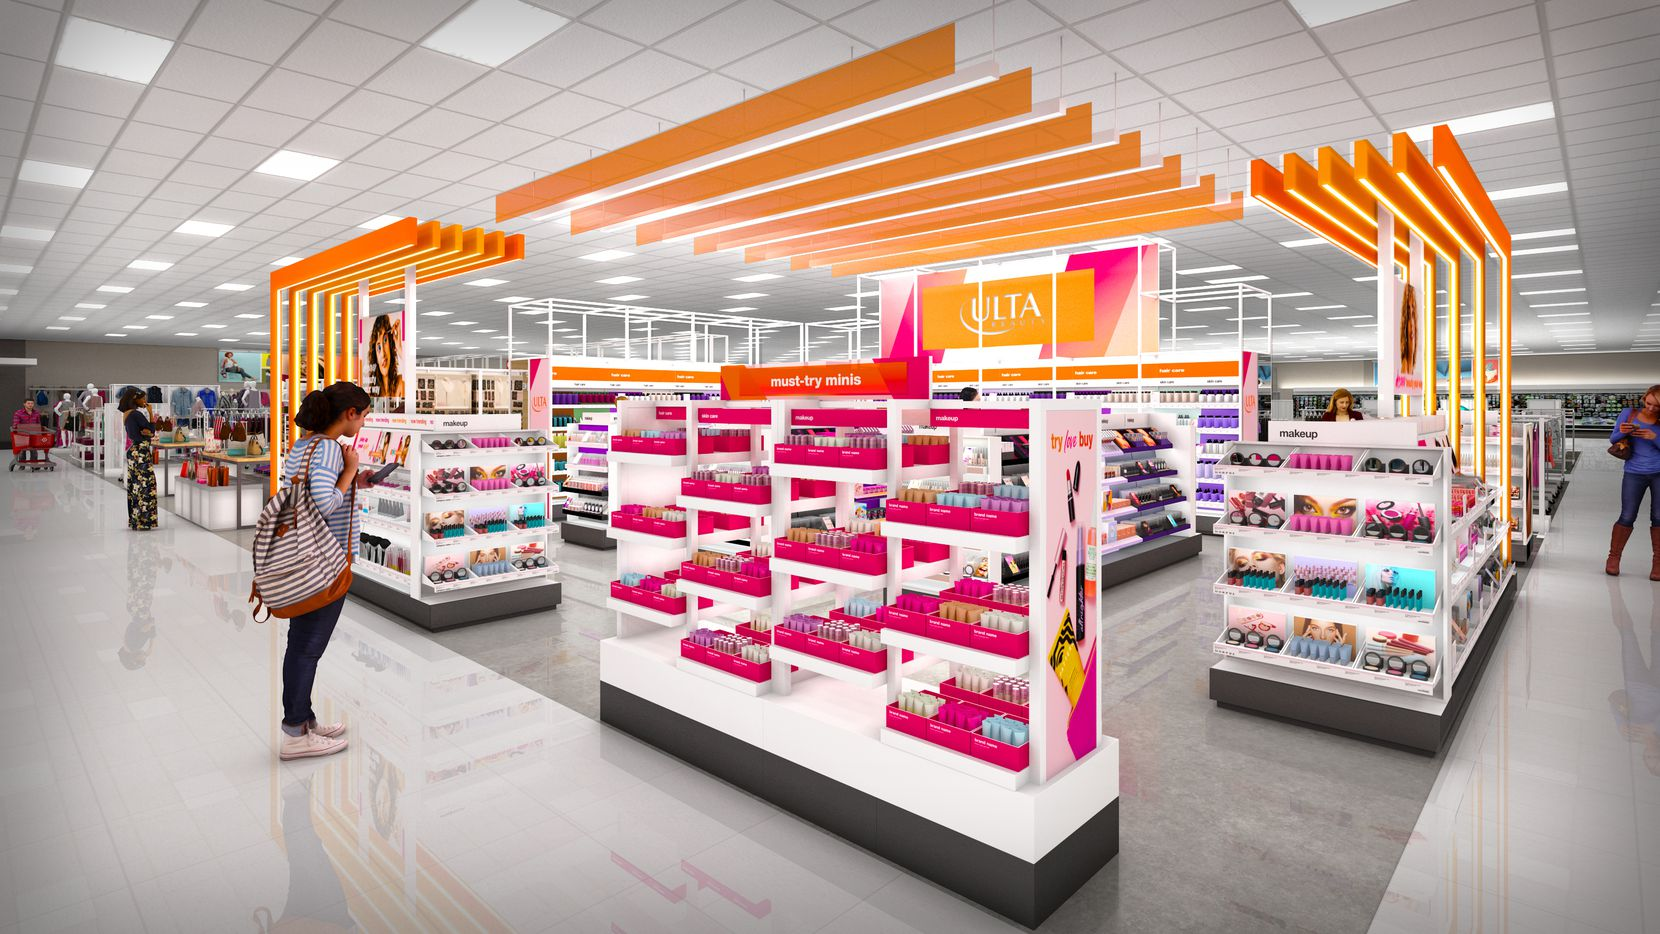 Ulta Beauty shops will start opening in Target stores in August.